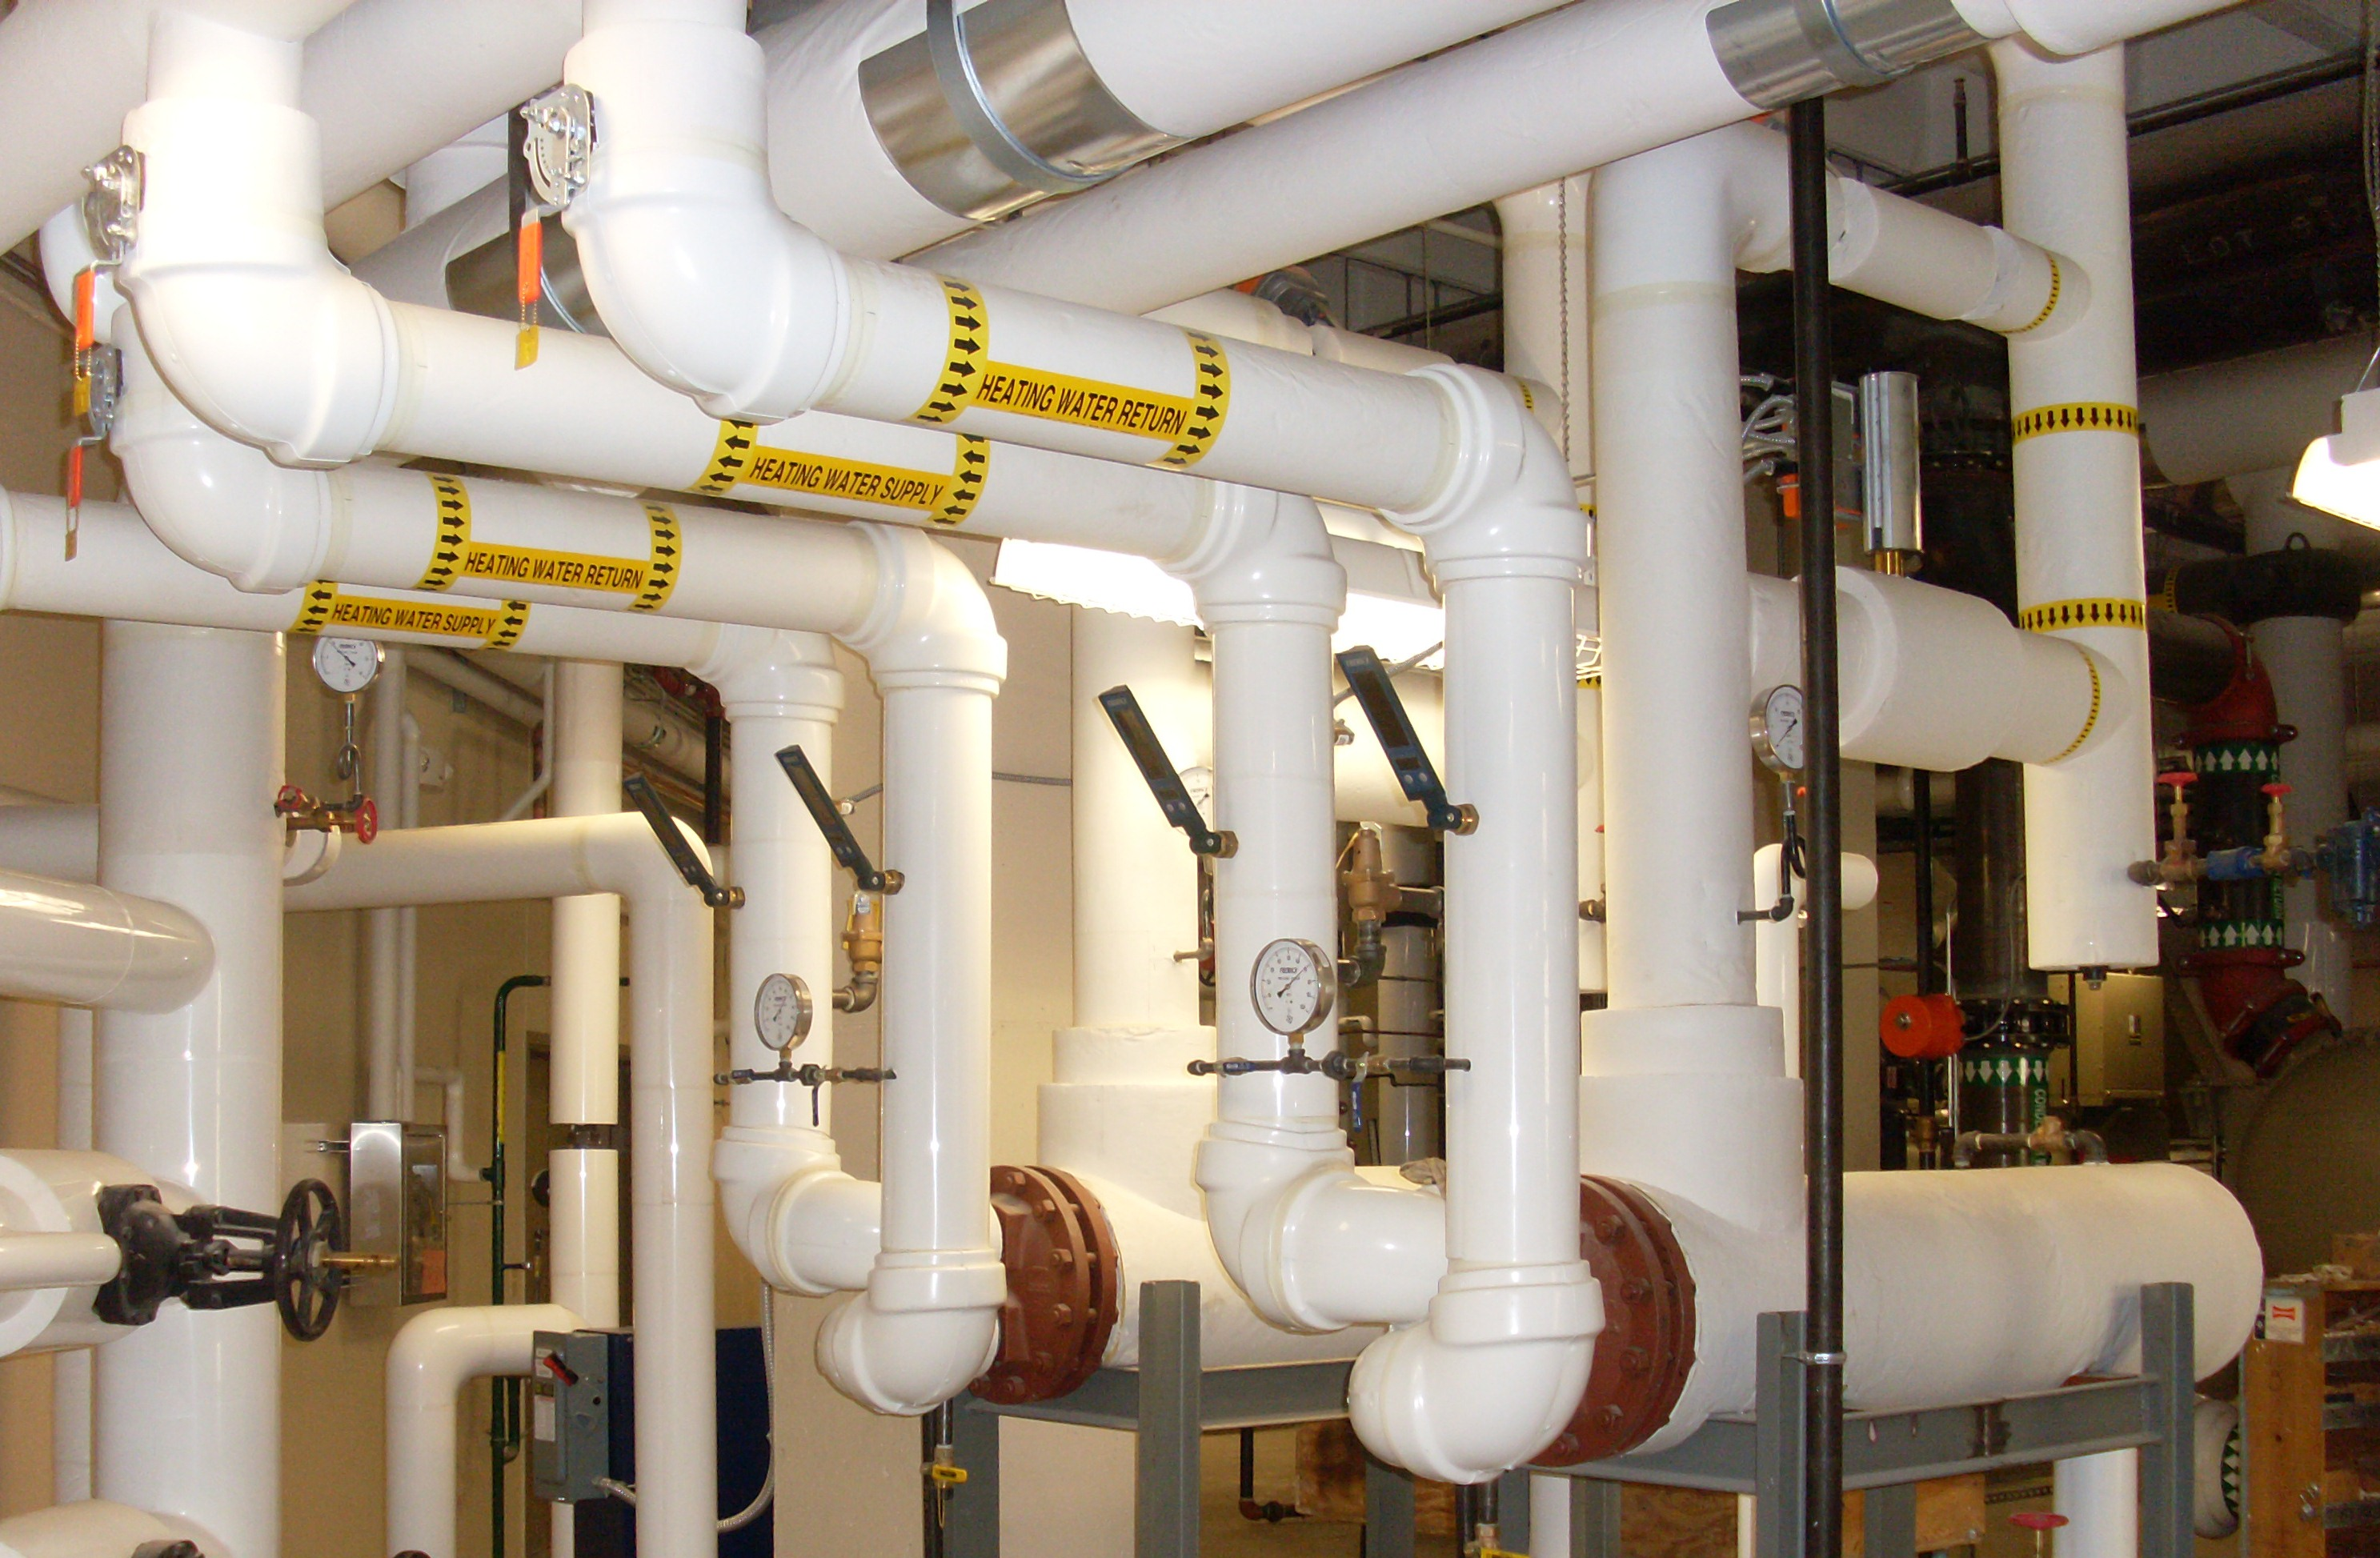 BuiltecPlastic | Innovative Piping System